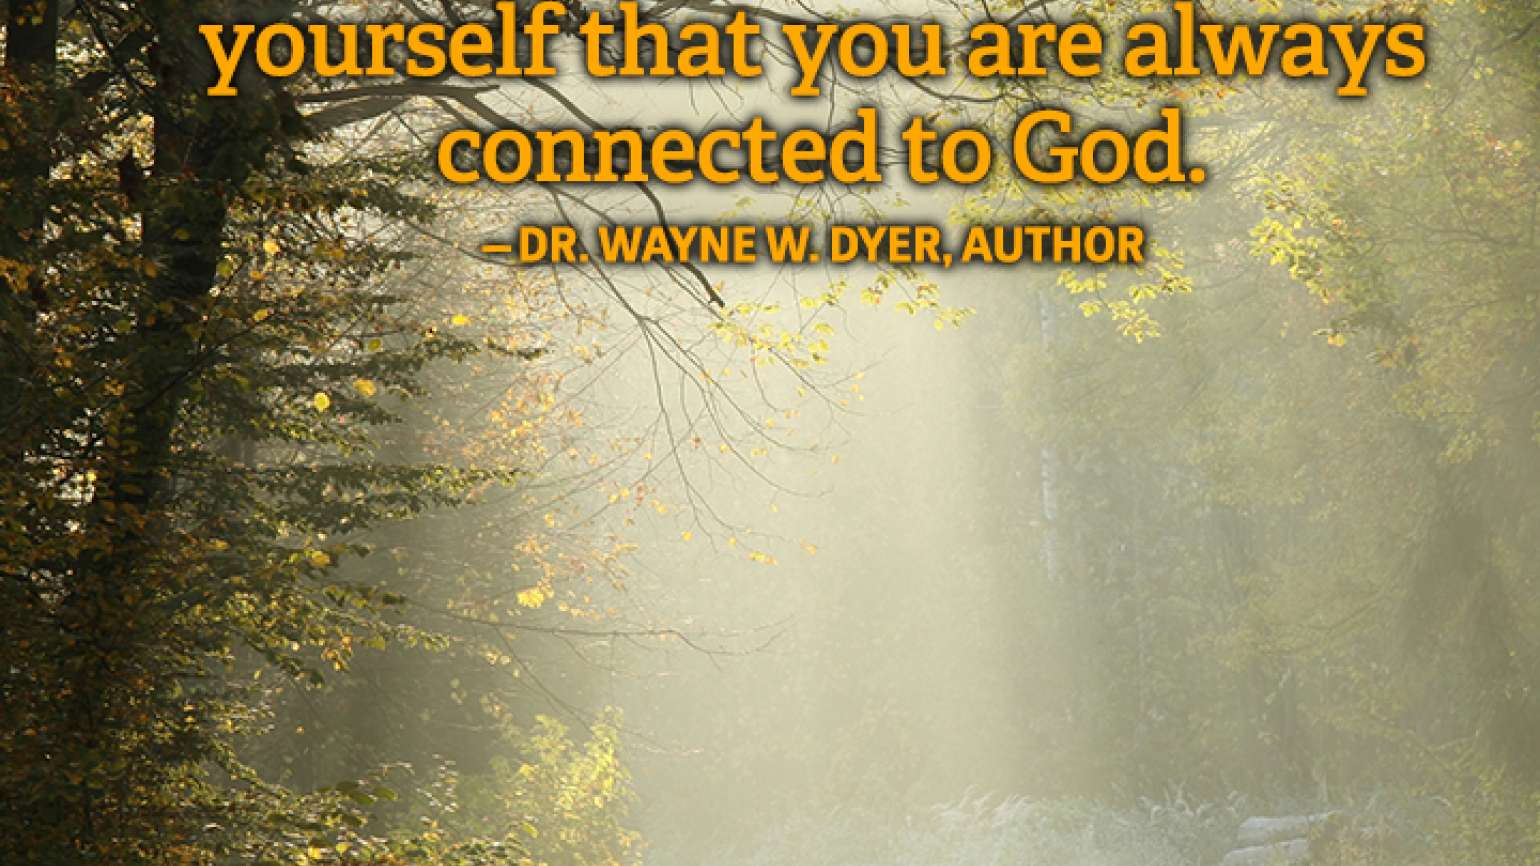 Prayer Quote Wayne Dyer purpose influence special favors connected